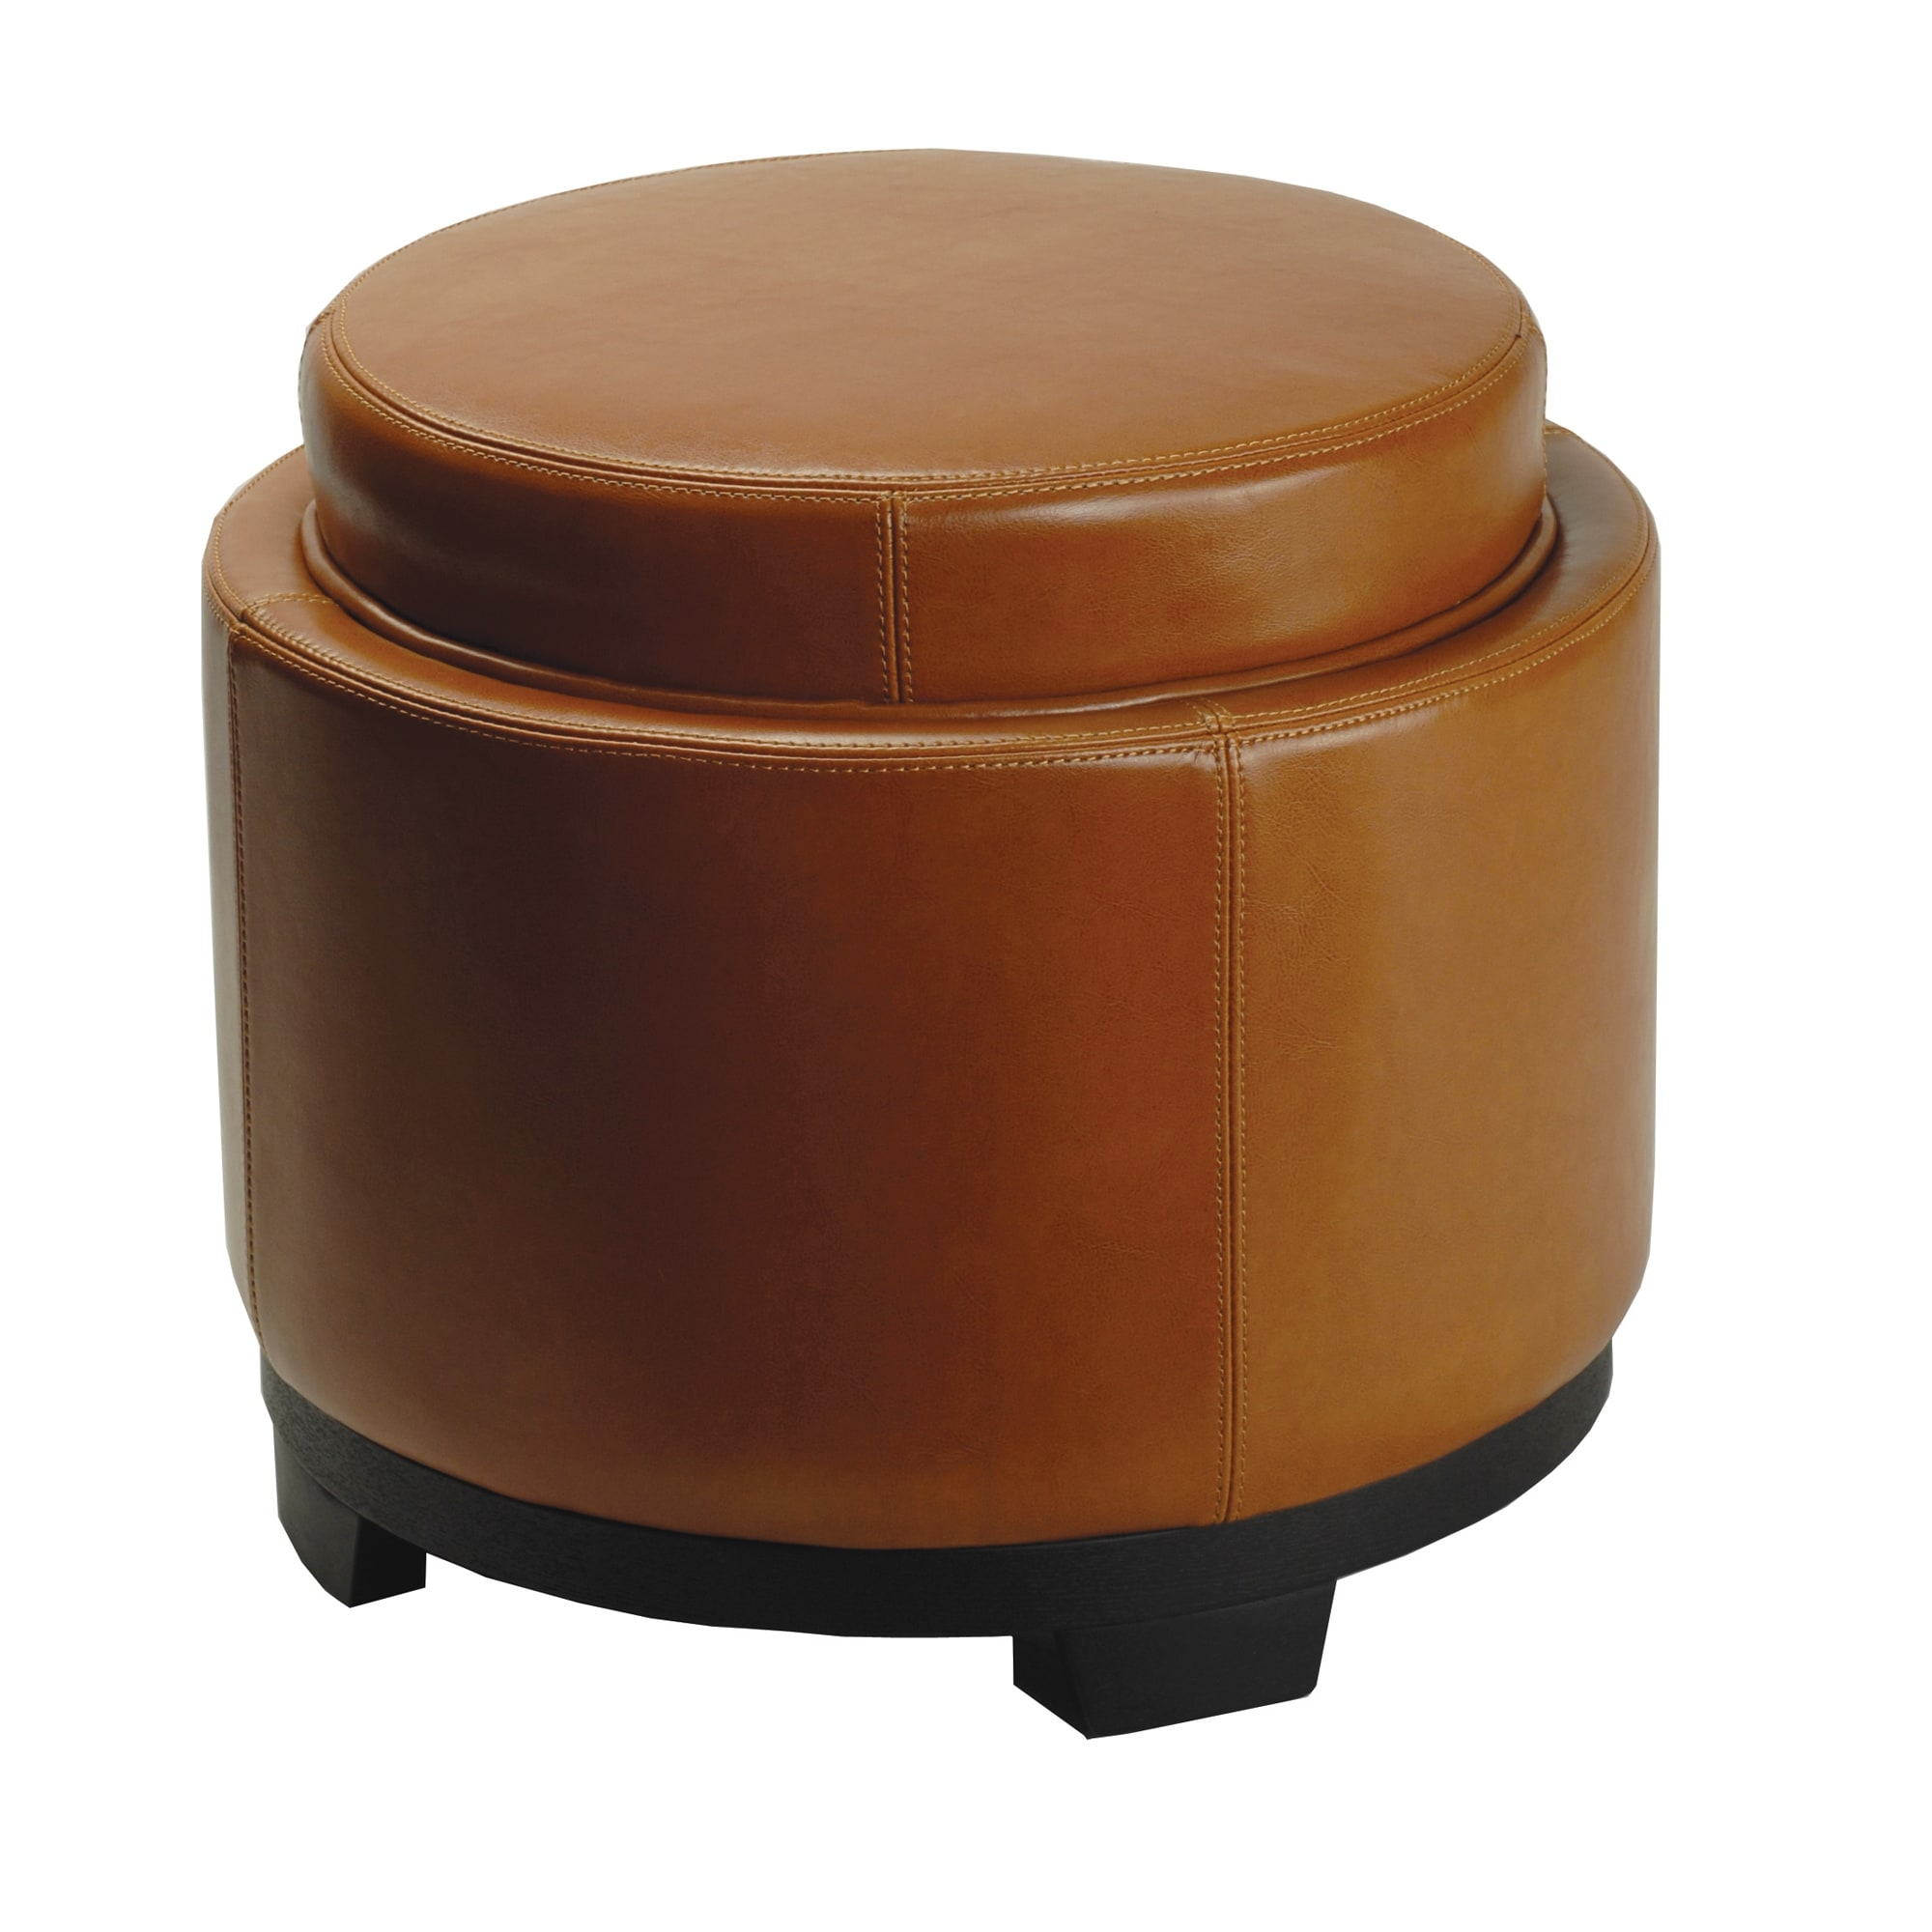 Peachy Details About Safavieh Round Storage Tray Saddle Ottoman Brown 19 X 19 X 17 Dailytribune Chair Design For Home Dailytribuneorg